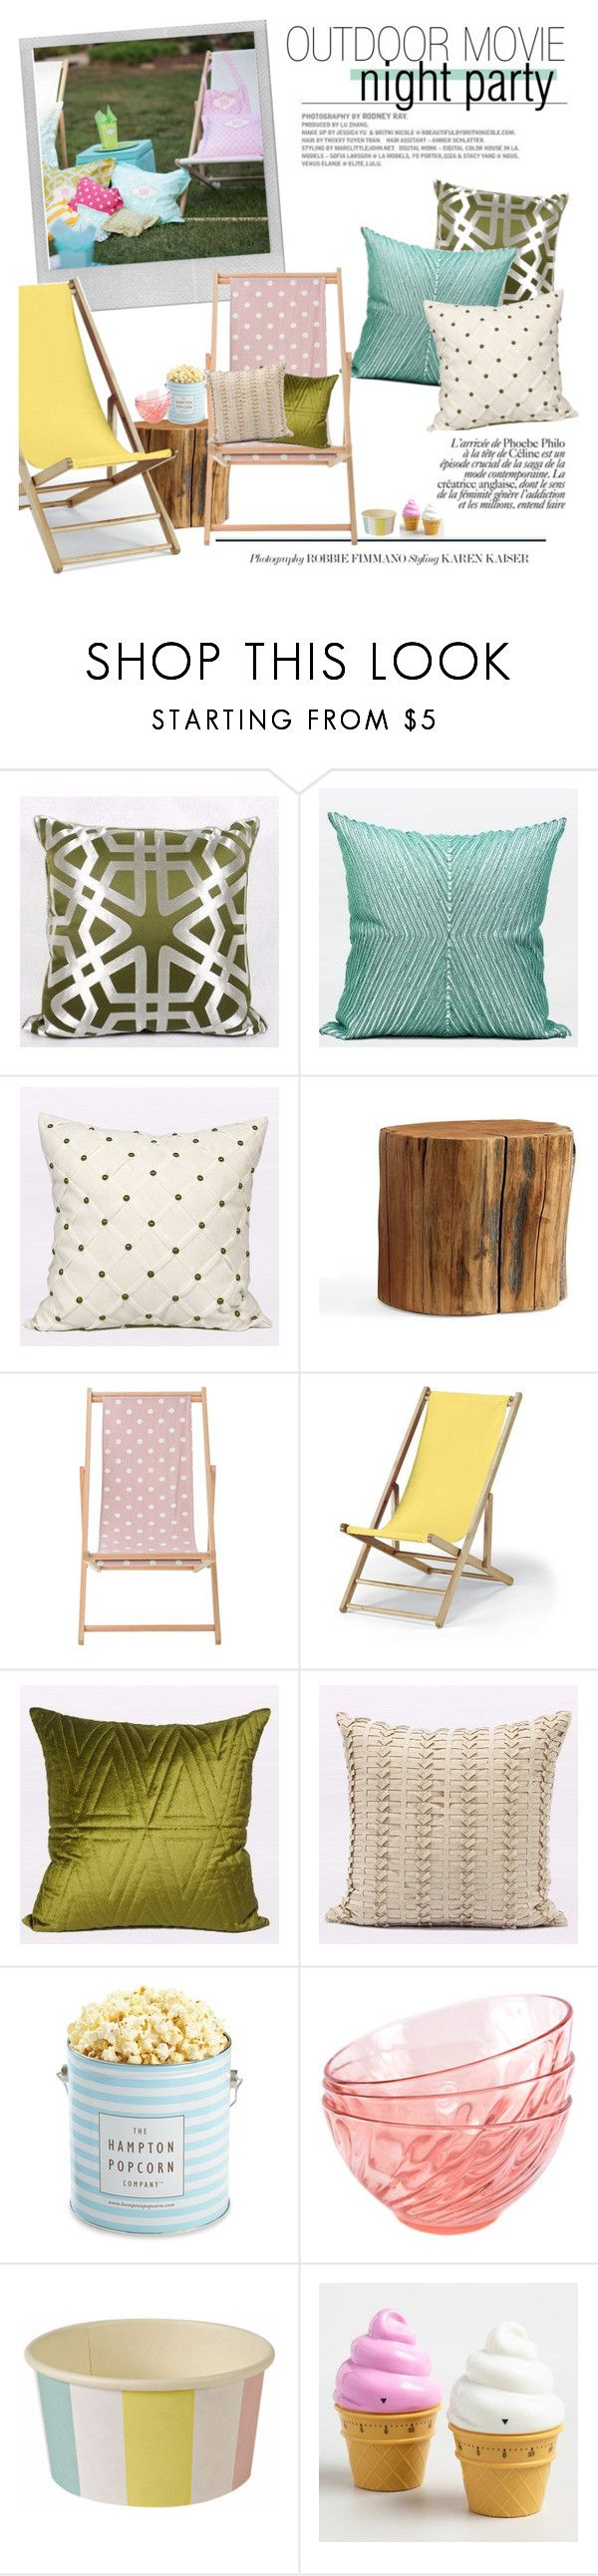 """outdoor movie night party"" by gentillehome ❤ liked on Polyvore featuring interior, interiors, interior design, home, home decor, interior decorating, Polaroid, Pottery Barn, Bloomingville and Telescope Casual"